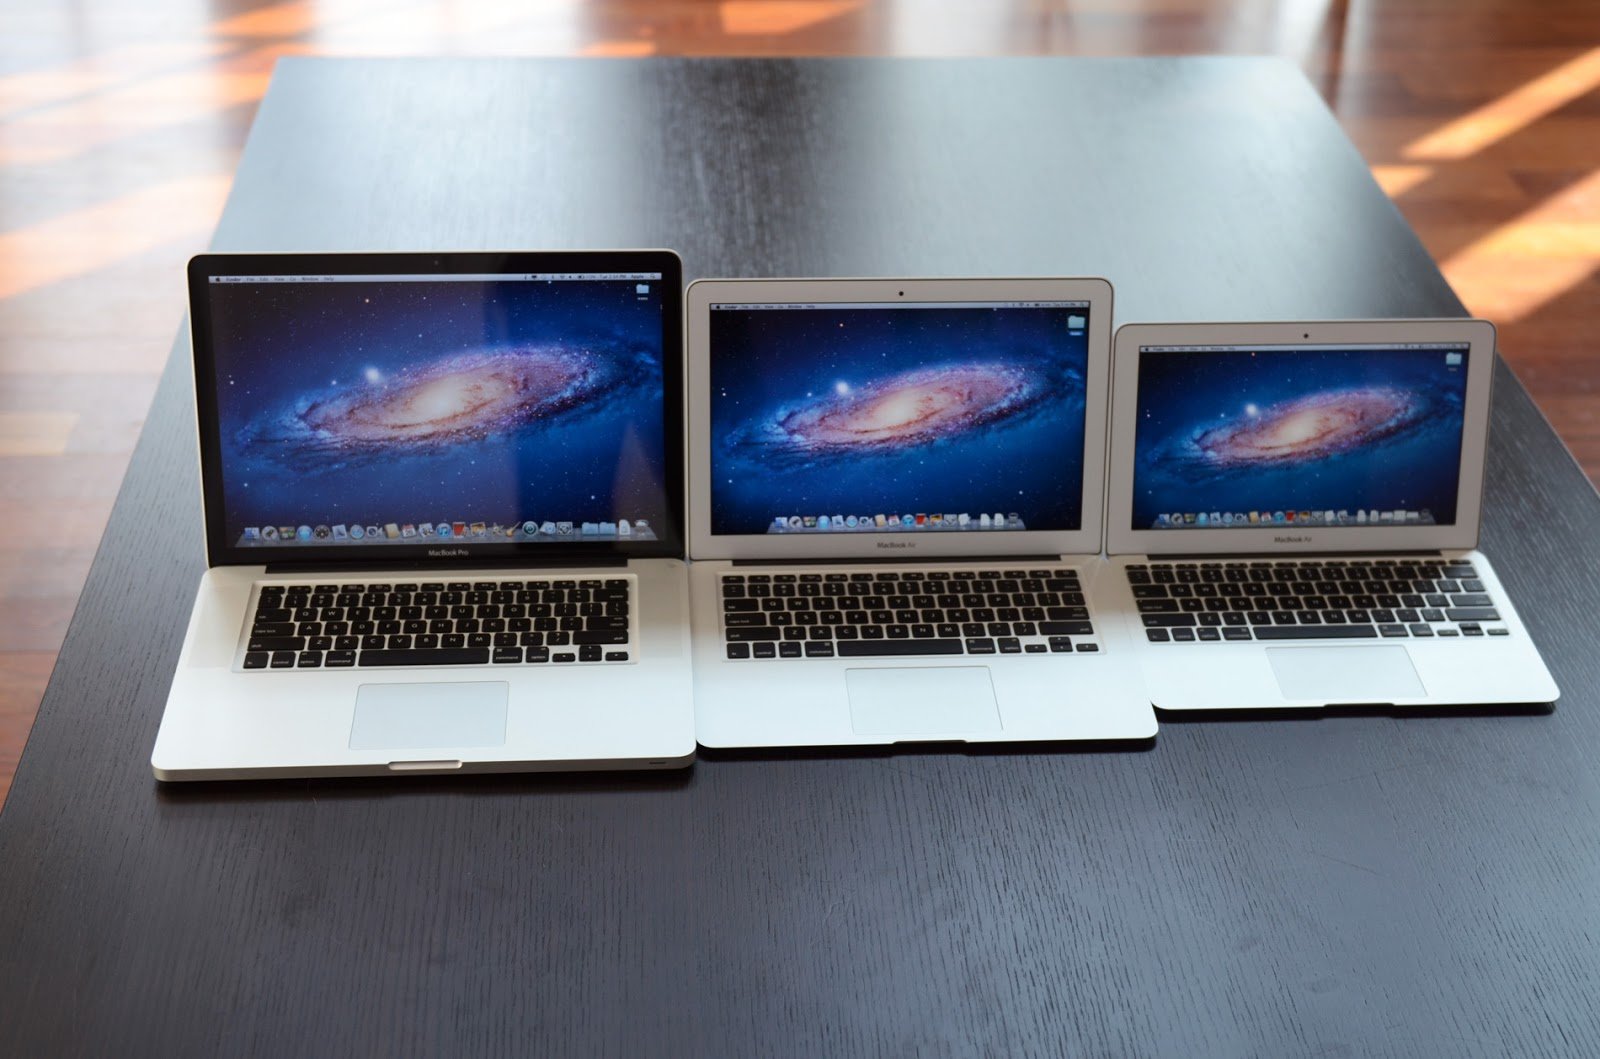 Bedanya Apple MacBook, MacBook Air dan MacBook Pro